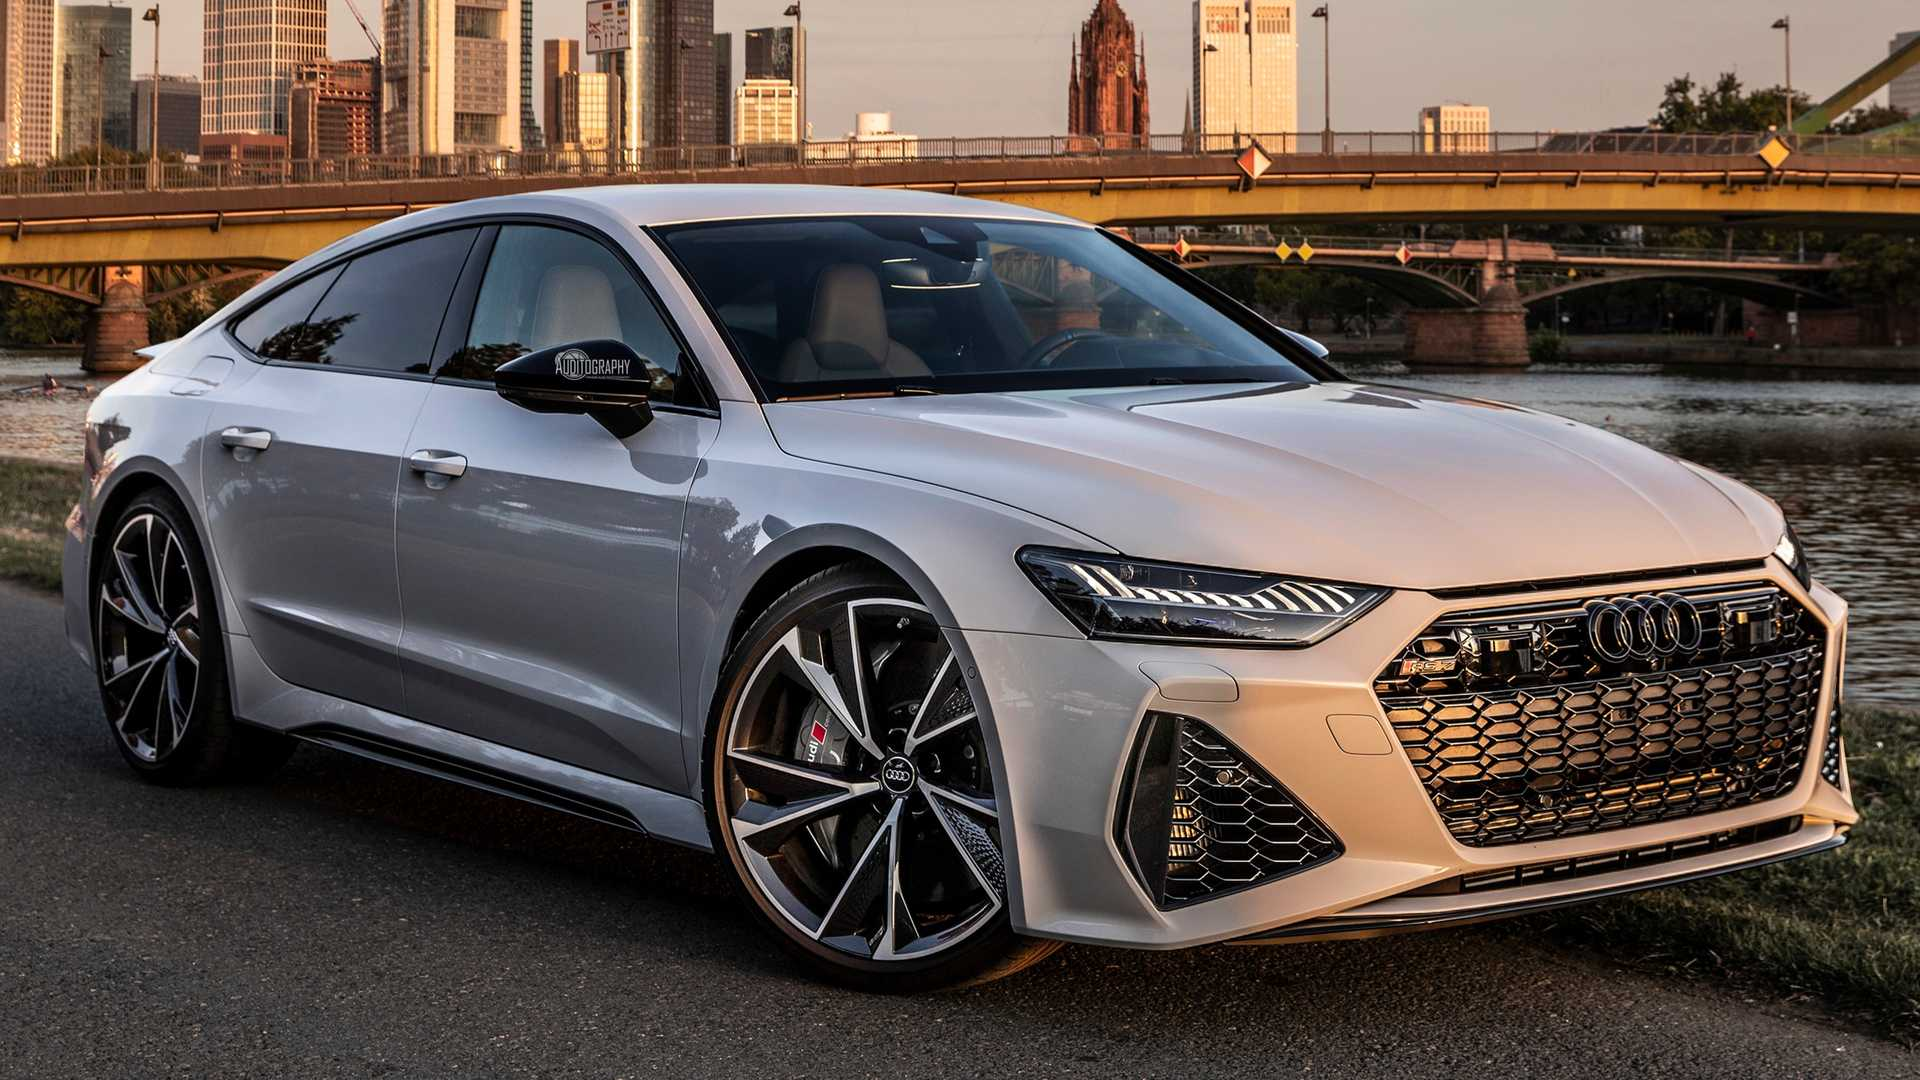 67 A 2020 Audi New Model And Performance